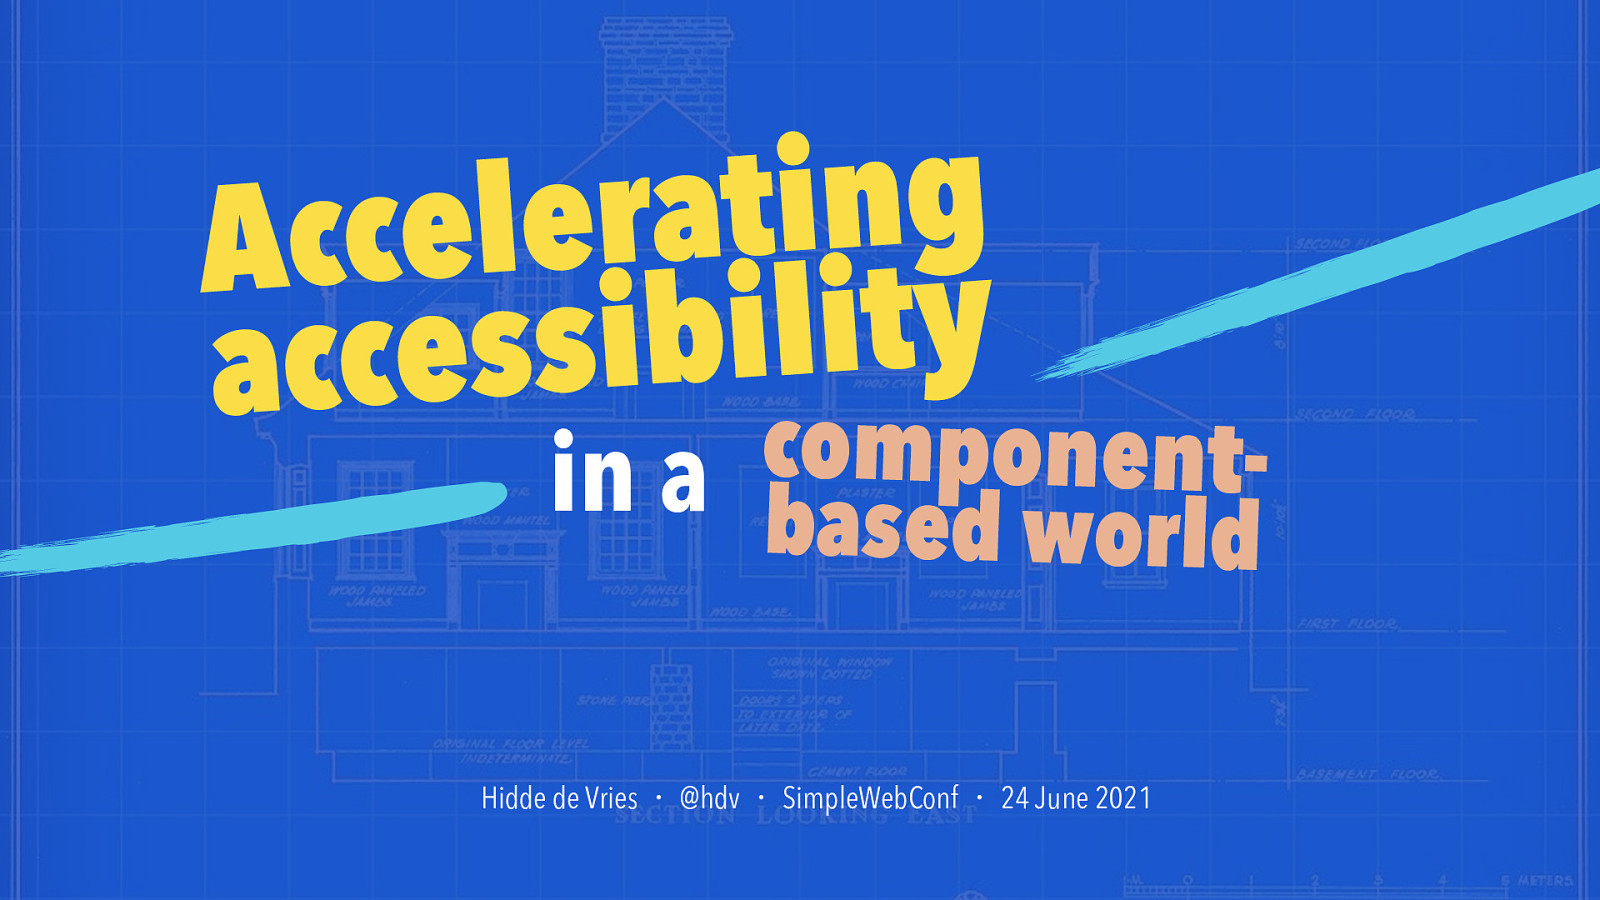 Accelerating accessibility in a component-based world